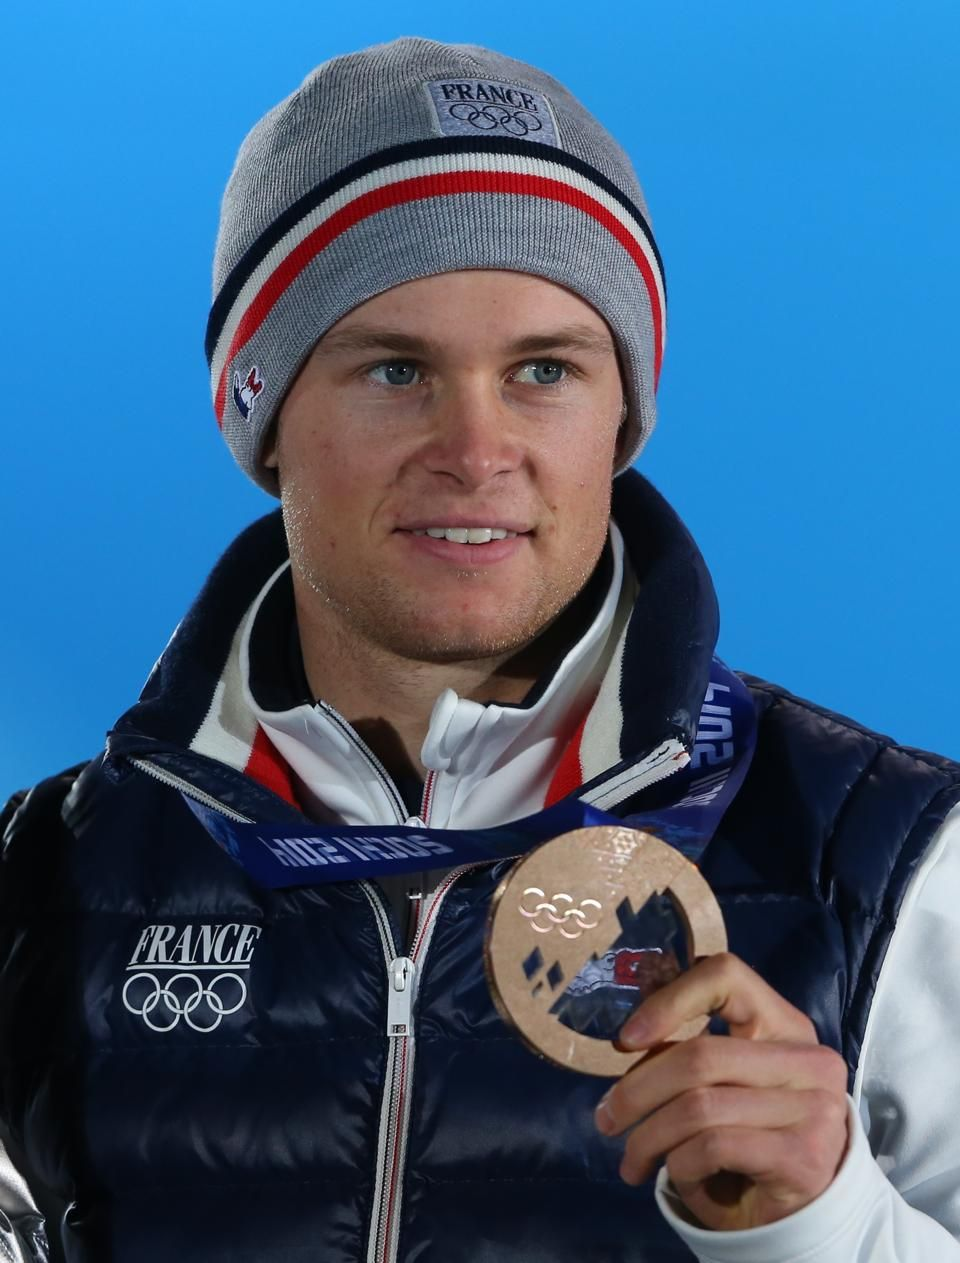 Alexis Pinturault of France, Bronze medalist at the Alpine Skiing Men's Giant Slalom, at the Winter Olympic Games 2014 in Sochi.